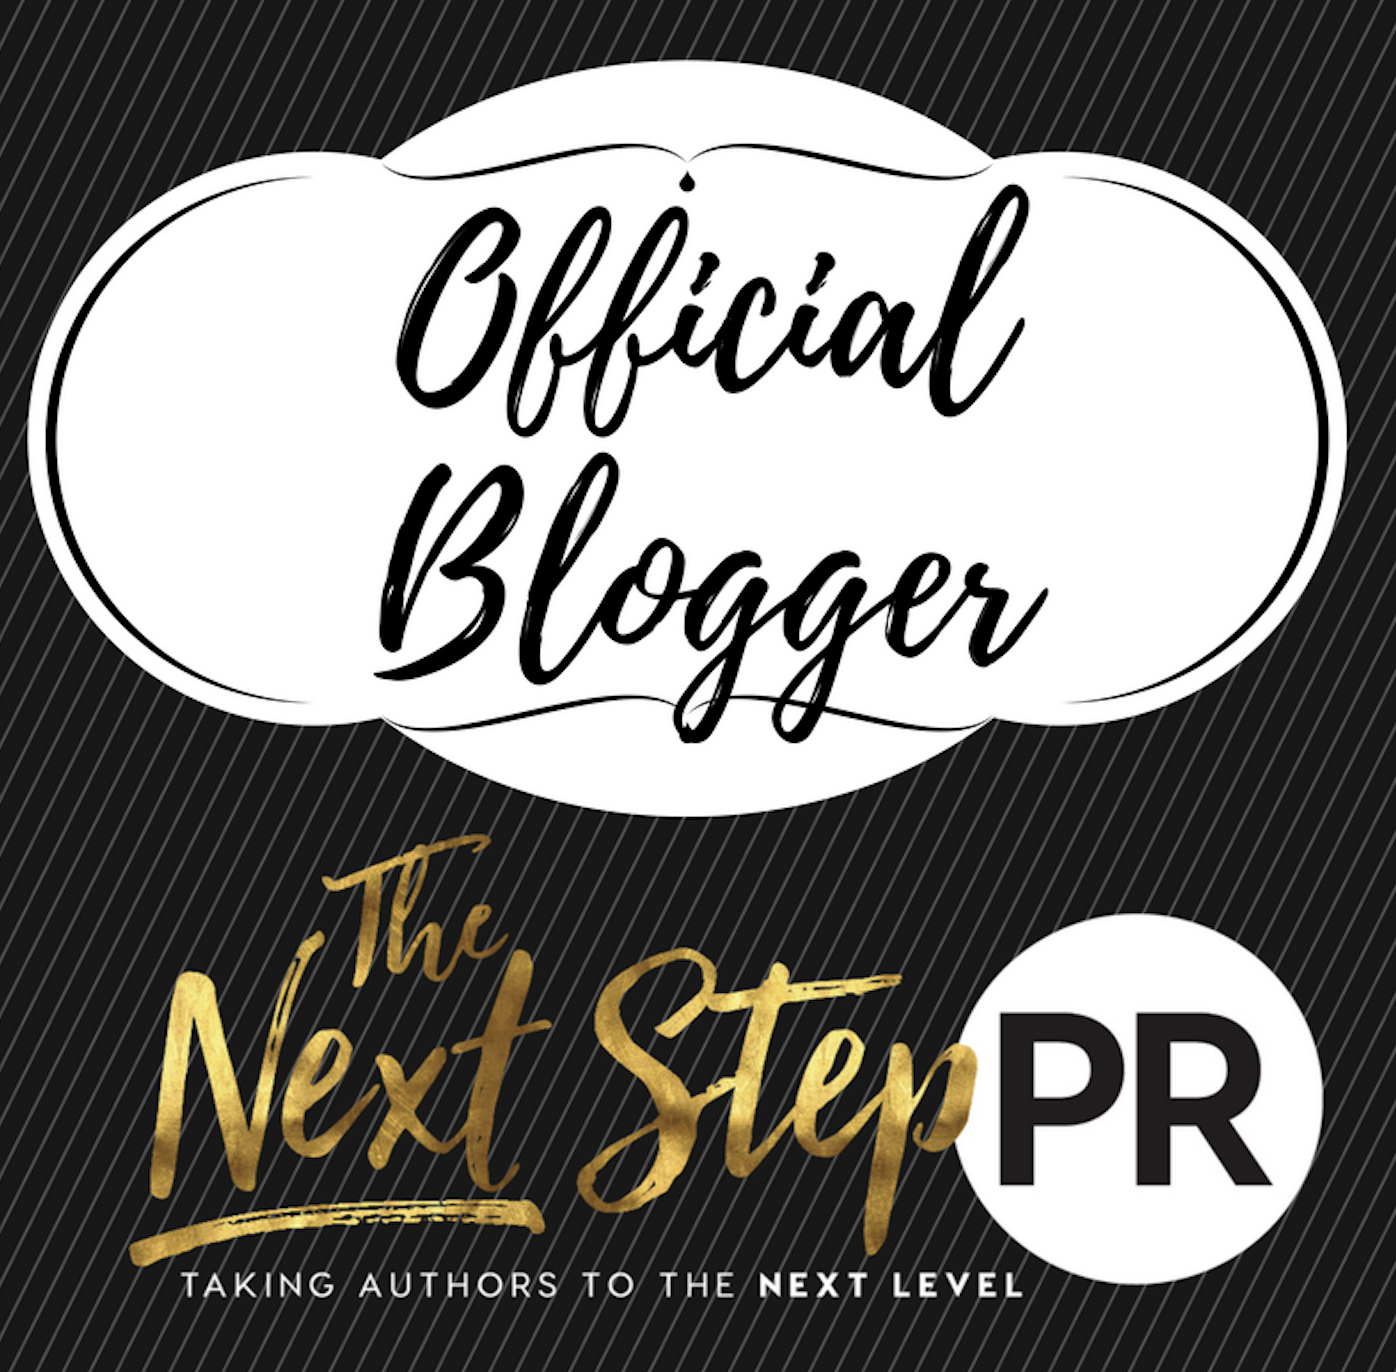 The Next Step PR Blogger